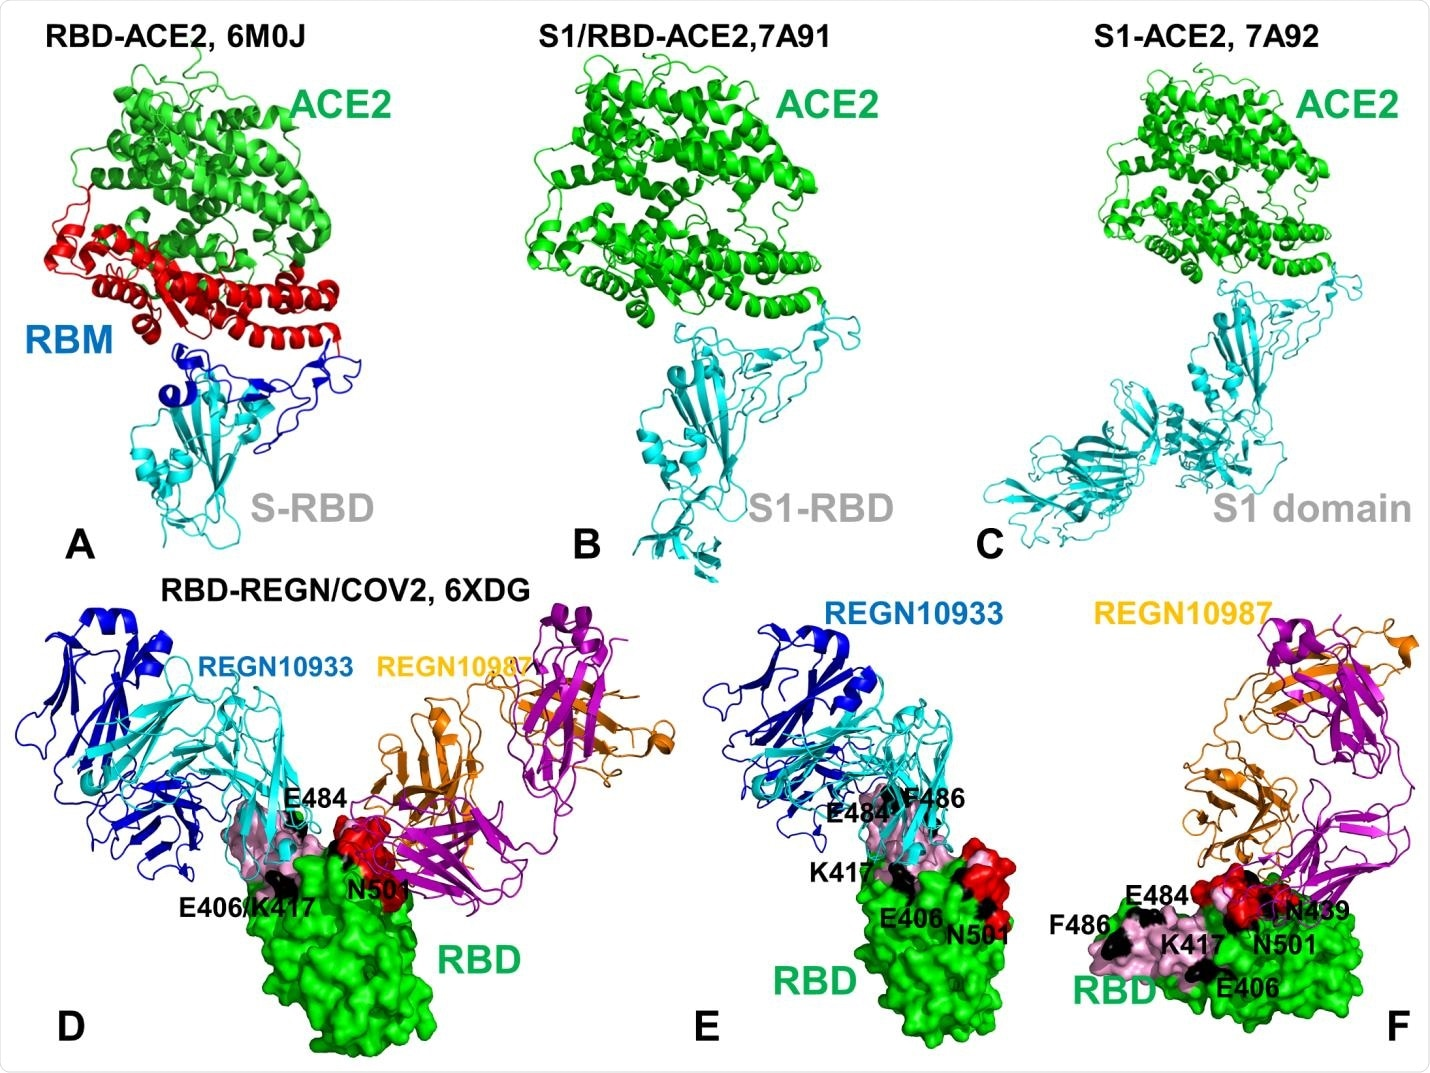 Crystal structures of the SARS-CoV-2 RBD and S1 domain complexes with ACE enzyme and REGN-COV2 antibody cocktail. (A) Structural overview of the SARS-CoV-2 RBD complex with ACE2 (pdb id 6M0J). The SARS-CoV RBD is shown in cyan ribbons and the RBM region is in blue ribbons. The subdomain I of human ACE2 is shown in red ribbons and the subdomain II is shown in green ribbons. The structure of ACE2 consists of the N-terminus subdomain I (residues 19-102, 290-397, and 417-430) and C-terminus subdomain II ( residues 103-289, 398-416, and 431-615) that form the opposite sides of the active site cleft. (B) The crystal structure of the dissociated S1 domain form in the complex with ACE2 (pdb id 7A91). S1-RBD is in cyan ribbons and ACE2 is in green ribbons. (C) The crystal structure of the fully dissociated S1 domain in the complex with ACE2 (pdb id 7A92). S1 domain of the SARSCoV- 2 S protein is in cyan ribbons and ACE2 is in green ribbons. (D) The cryo-EM structure of the SARS-CoV-2 RBD in the complex with REGN10933/REGN10987 antibody cocktail. The RBD region is shown in green surface. REGN10933 Fab fragment is shown in ribbons with heavy chain in cyan and light chain in blue. REGN10987 is in ribbons with heavy chain in orange and light chain in purple. The positions of functional residues targeted by mutational variants and antibody-escaping mutations are E406, K417, E484 and N501 are annotated and highlighted as black patches on the RBD surface. (E) A close-up of the SARS-CoV-2 RBD interactions with REGN10933. The RBD is shown in green surface. REGN10933 Fab fragment is shown in ribbons with heavy chain in cyan and light chain in blue. The REGN10933 antibody epitope on RBD is highlighted in cyan patches on the surface. The positions of E406, K417, E484, F486, N501 are shown as black surface patches on the RBD. (F) A close-up of the SARSCoV- 2 RBD interface with REGN10987. The red patches correspond to the REGN10987 epitope. The positions of E406, K417, N439, E484, F486, N501 are shown as black surface patches on the RBD.